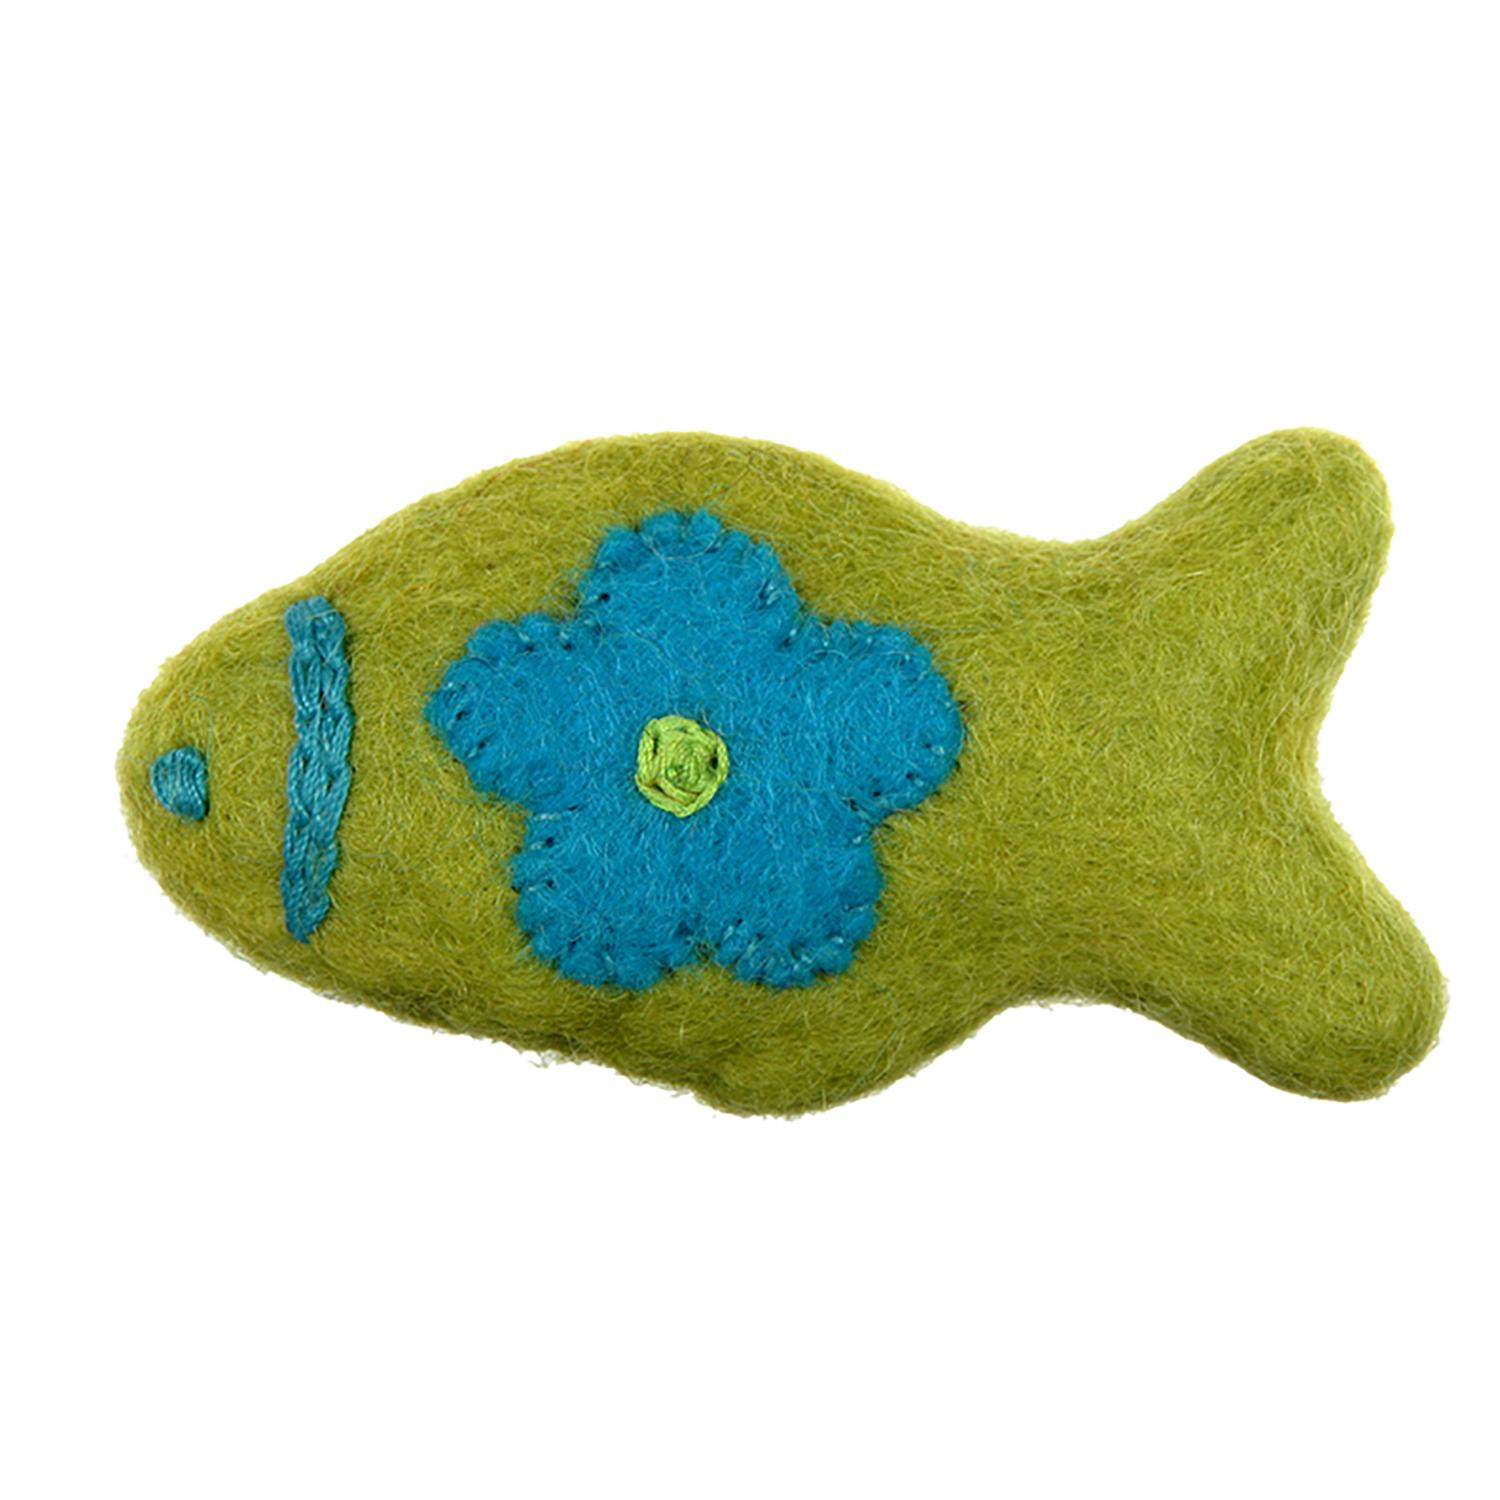 Wooly Wonkz Woodland Cat Toy - Lime Fish